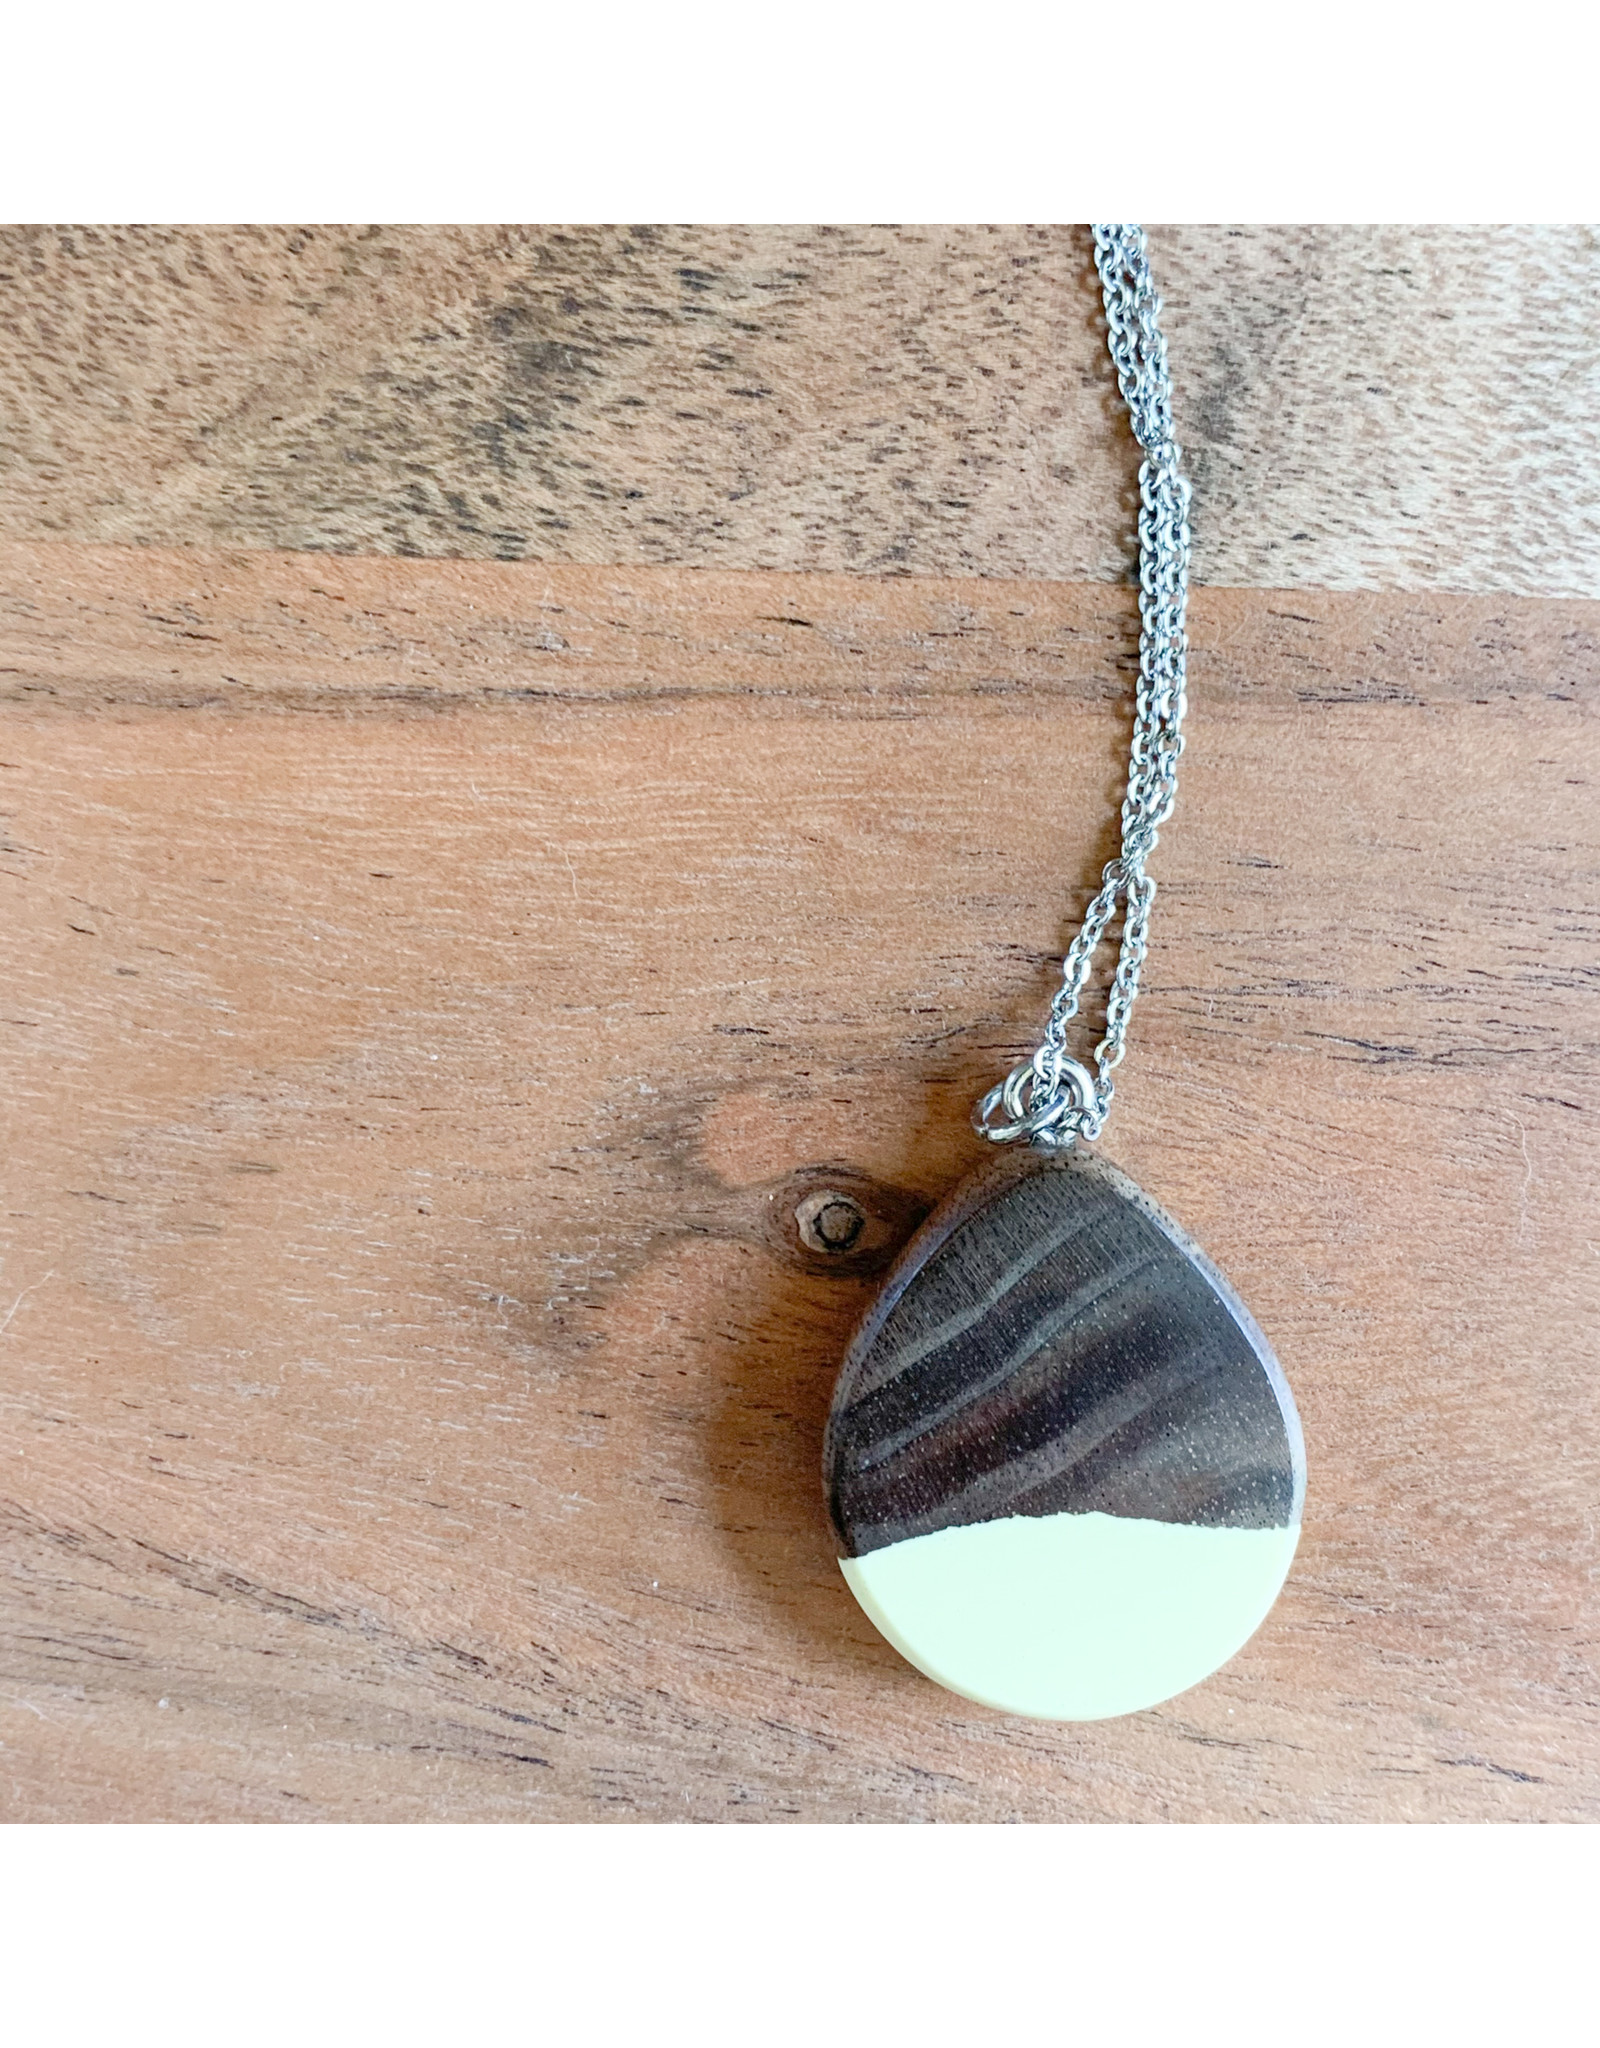 Peter Mielech Necklace - Brown and Cream Mini Teardrop